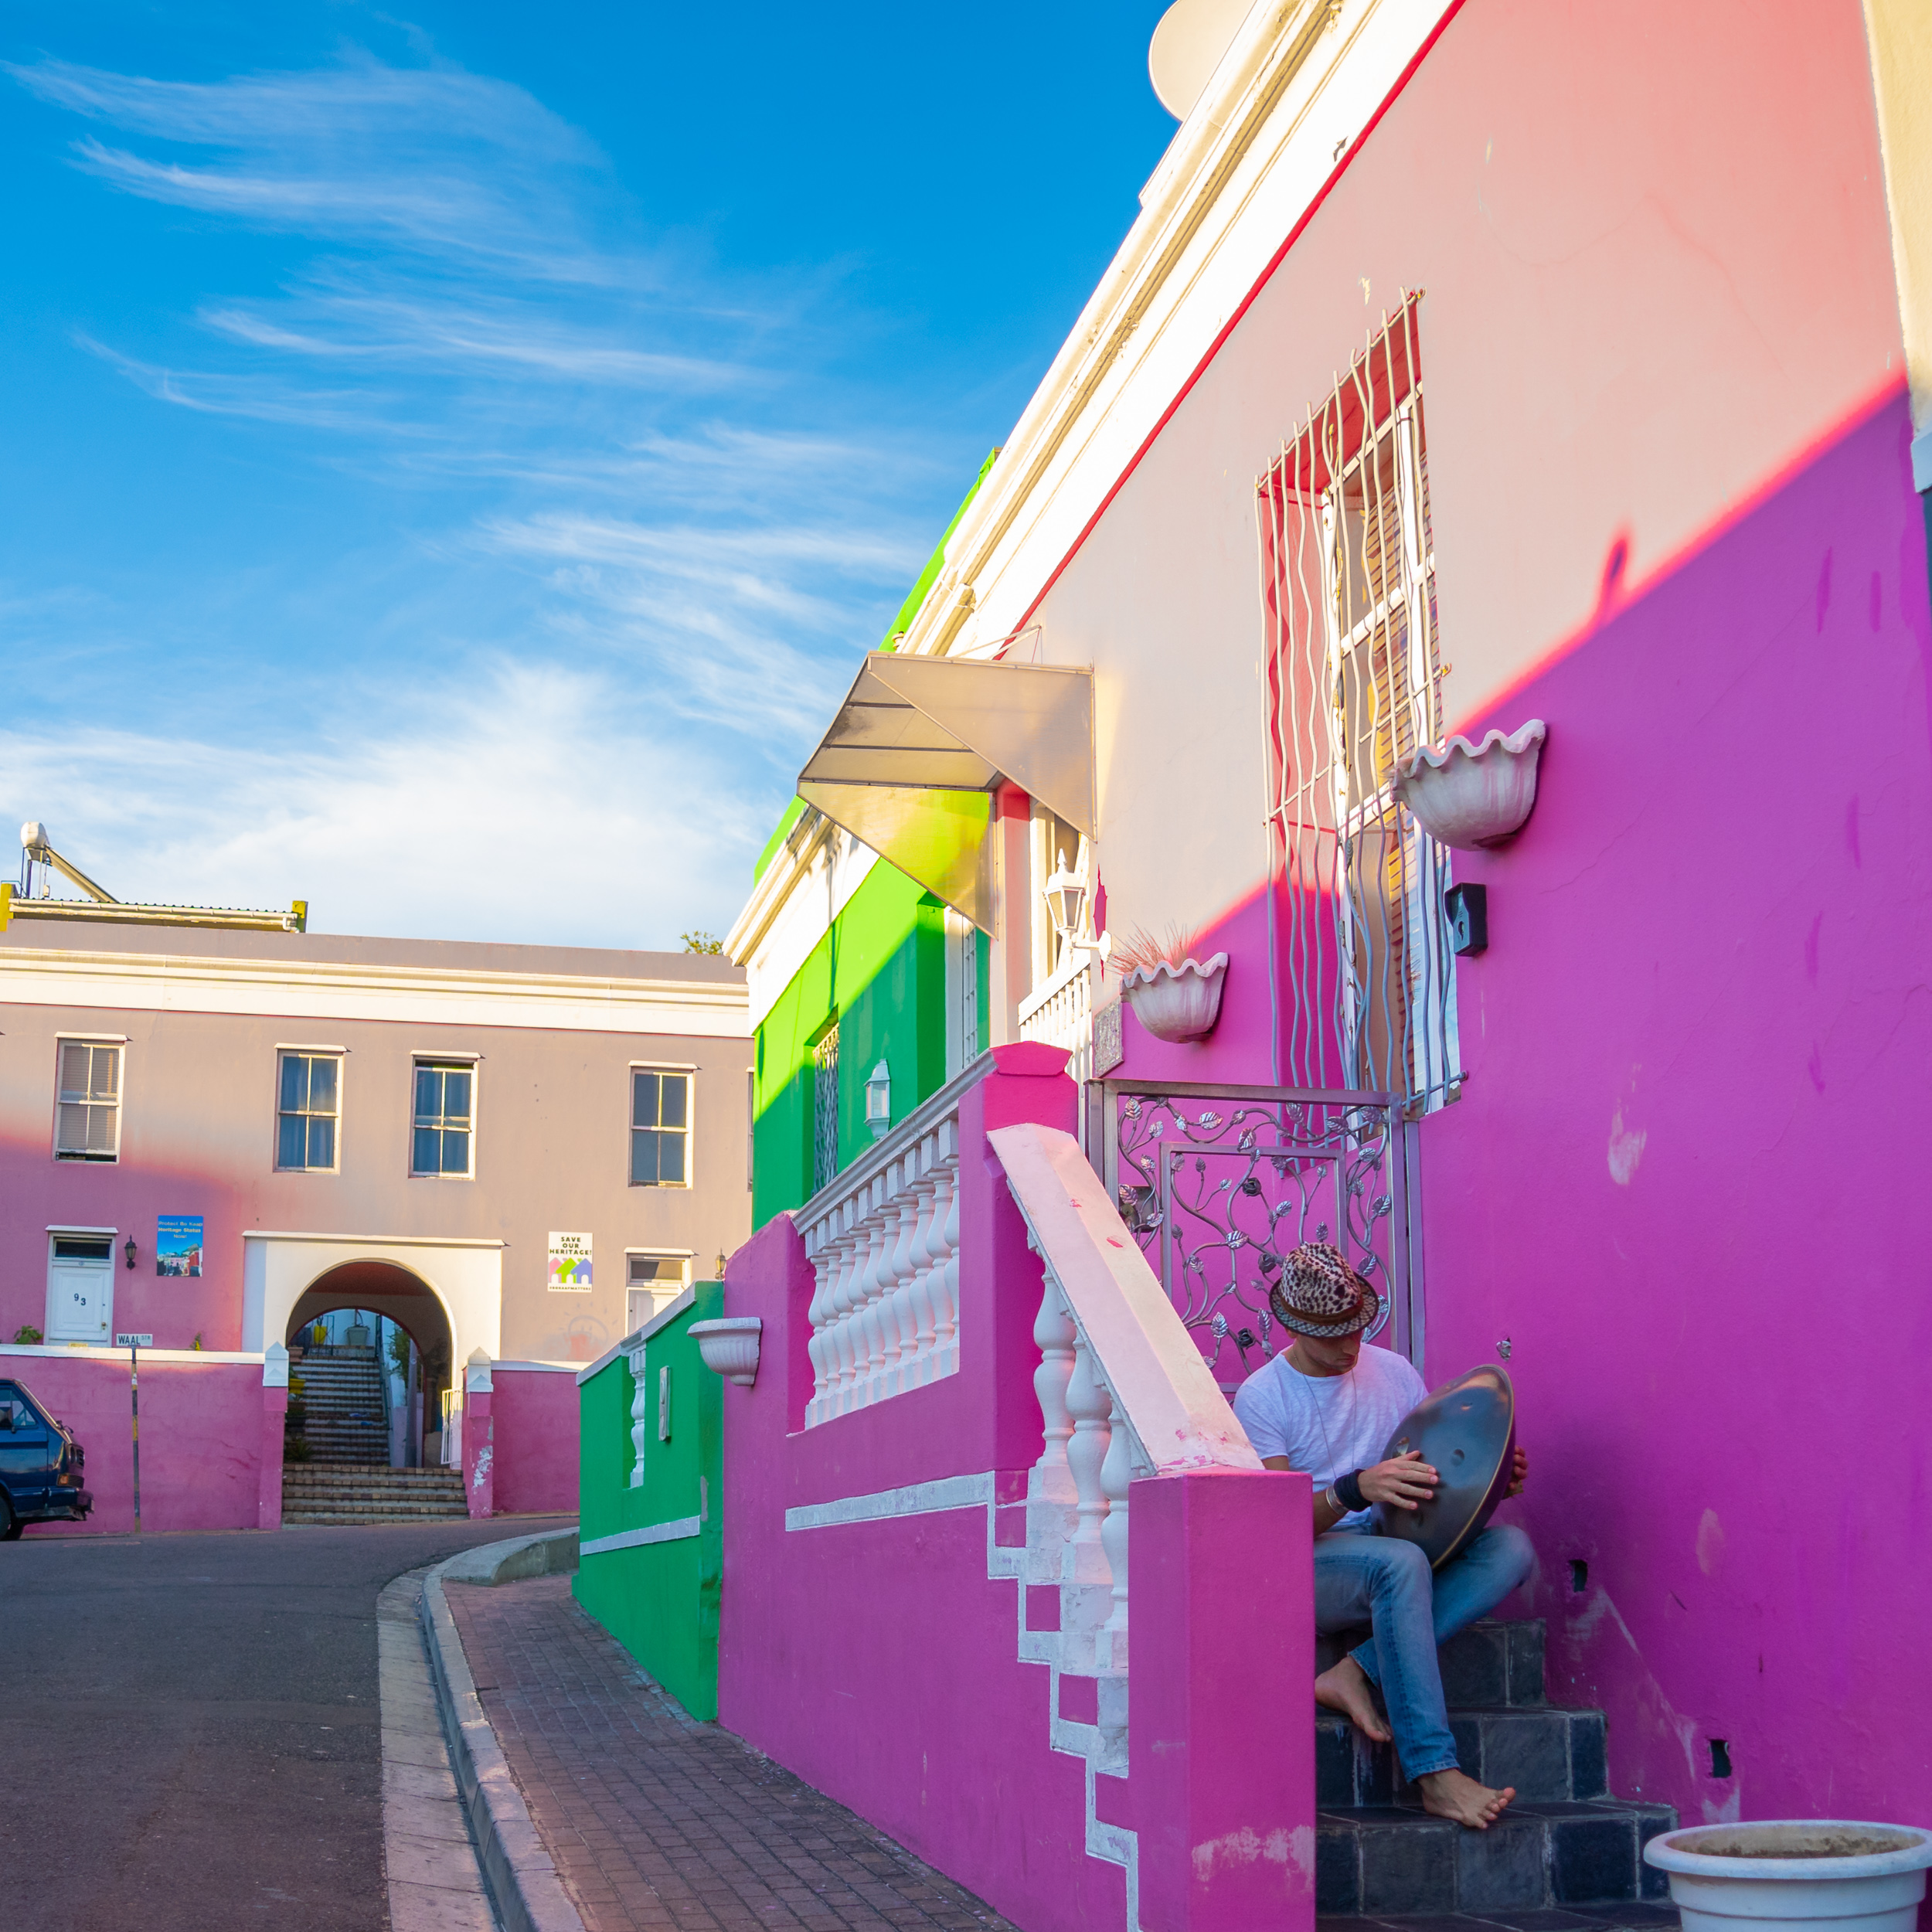 Marco Selvaggio - Bo-Kaap, Cape Town South Africa - Image by Ken Treloar Photography 2019-4.jpg